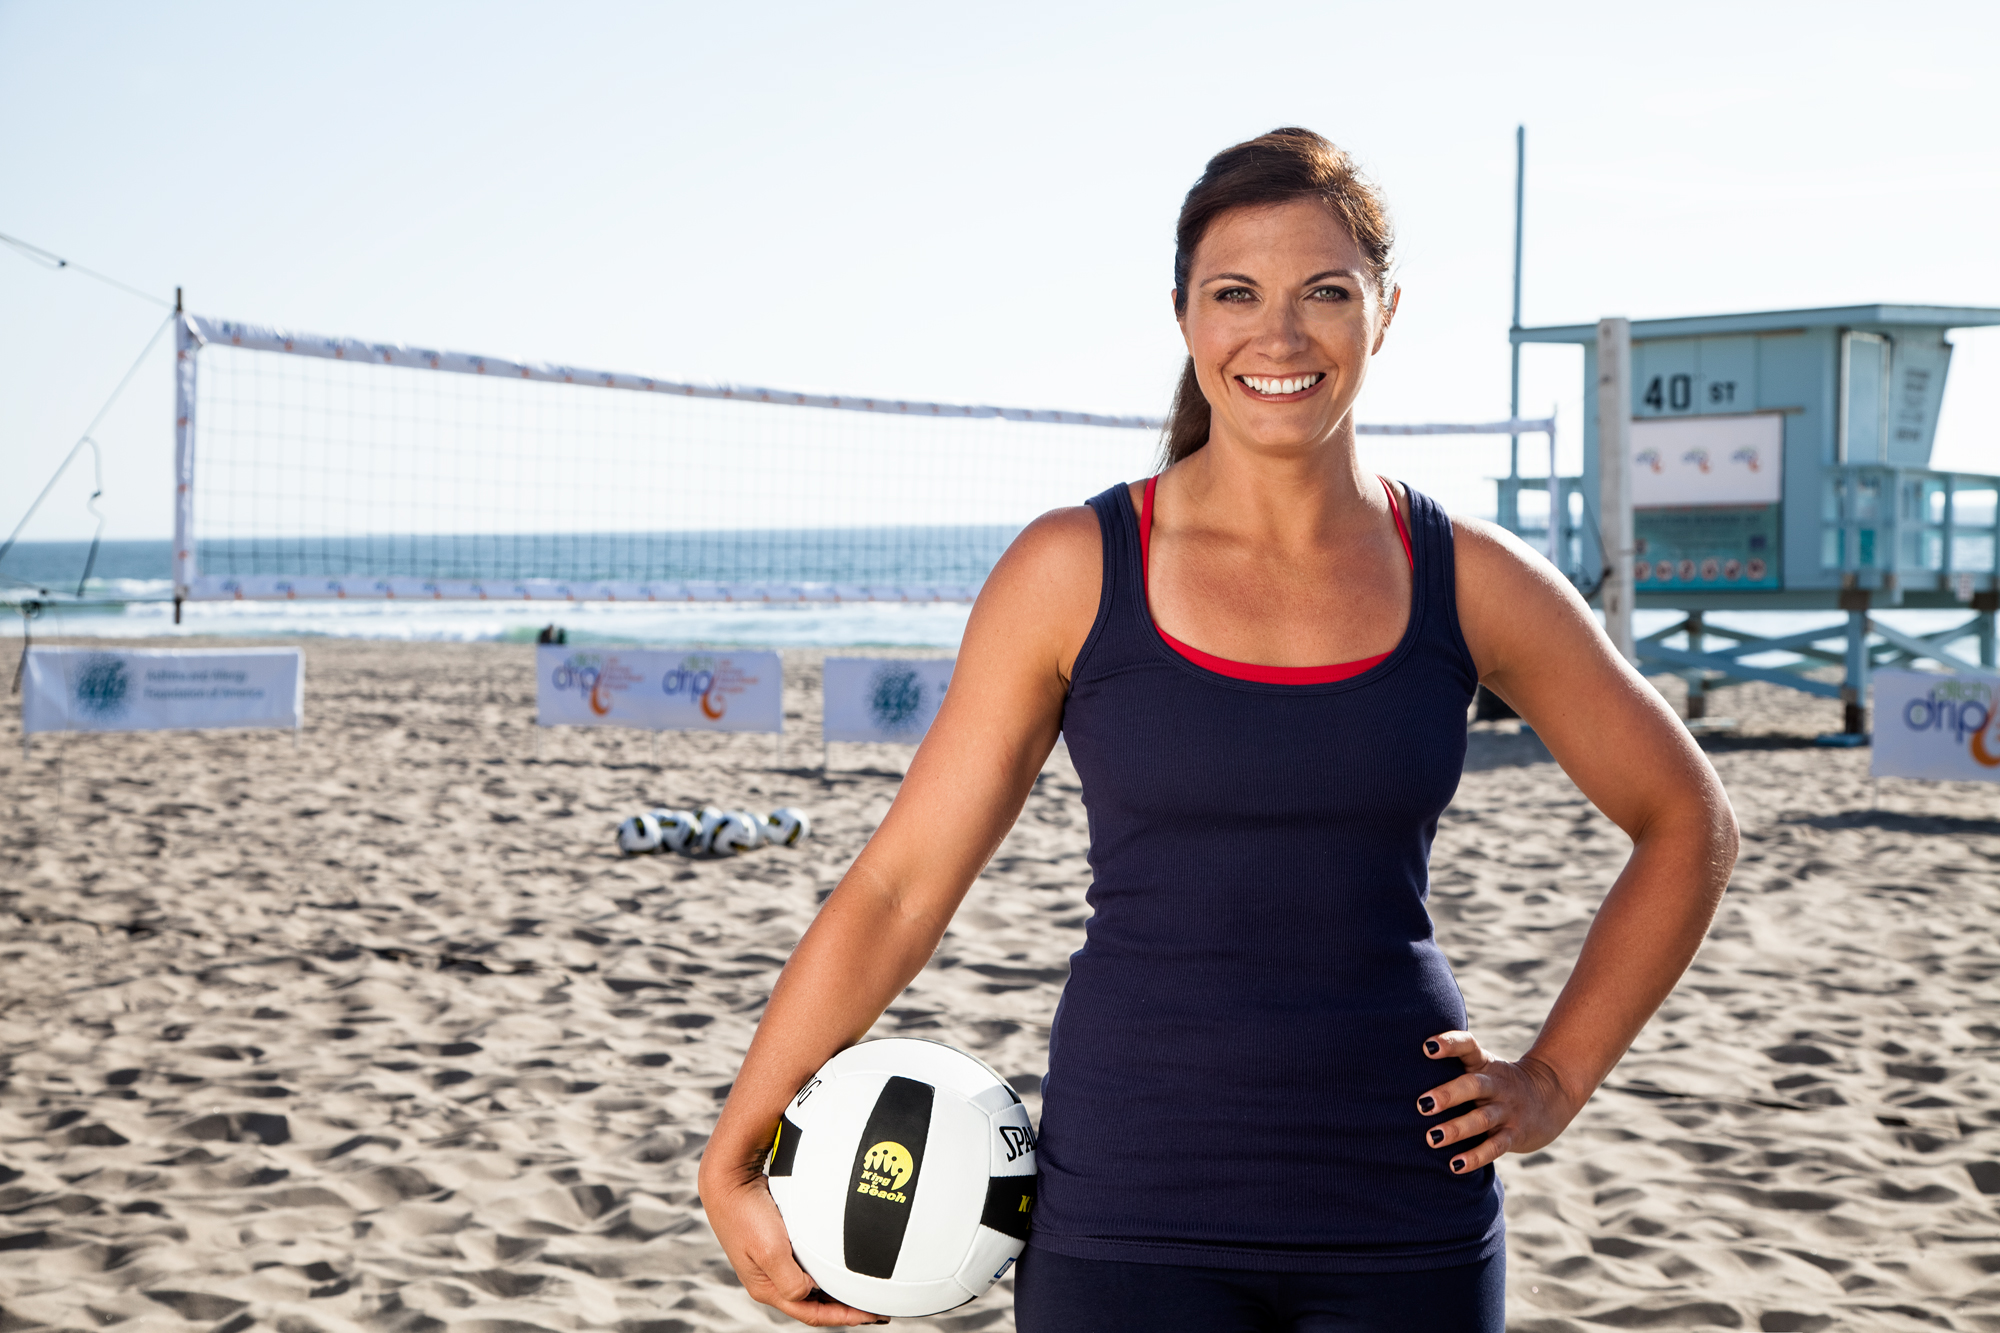 Paparazzi Misty May Treanor nude (23 foto and video), Sexy, Sideboobs, Boobs, panties 2019